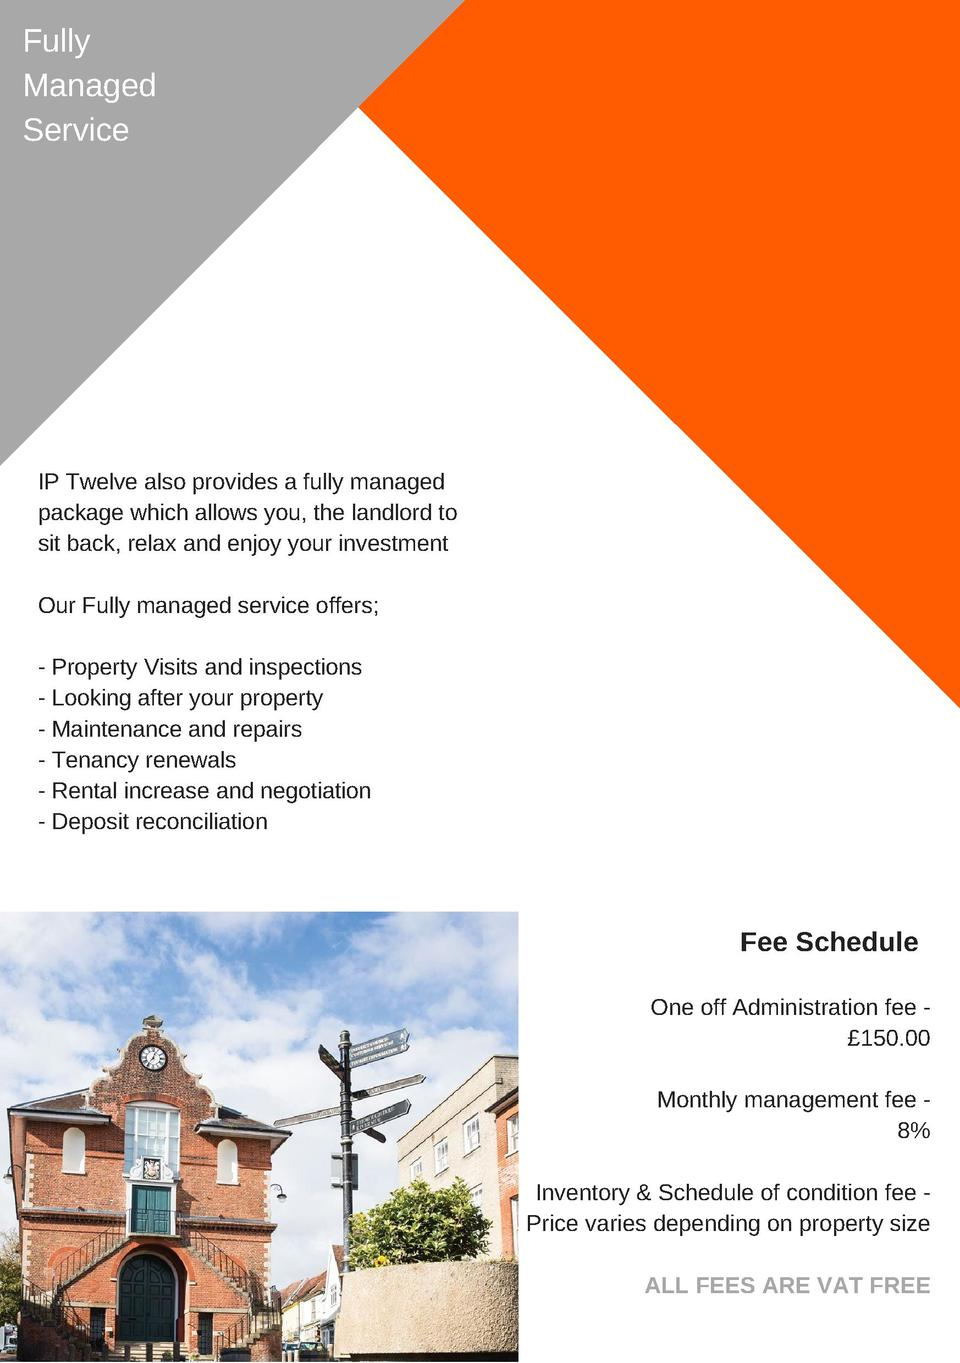 Fully Managed Service  IP  Twelve  also  provides  a  fully  managed package  which  allows  you,  the  landlord  to sit  ...